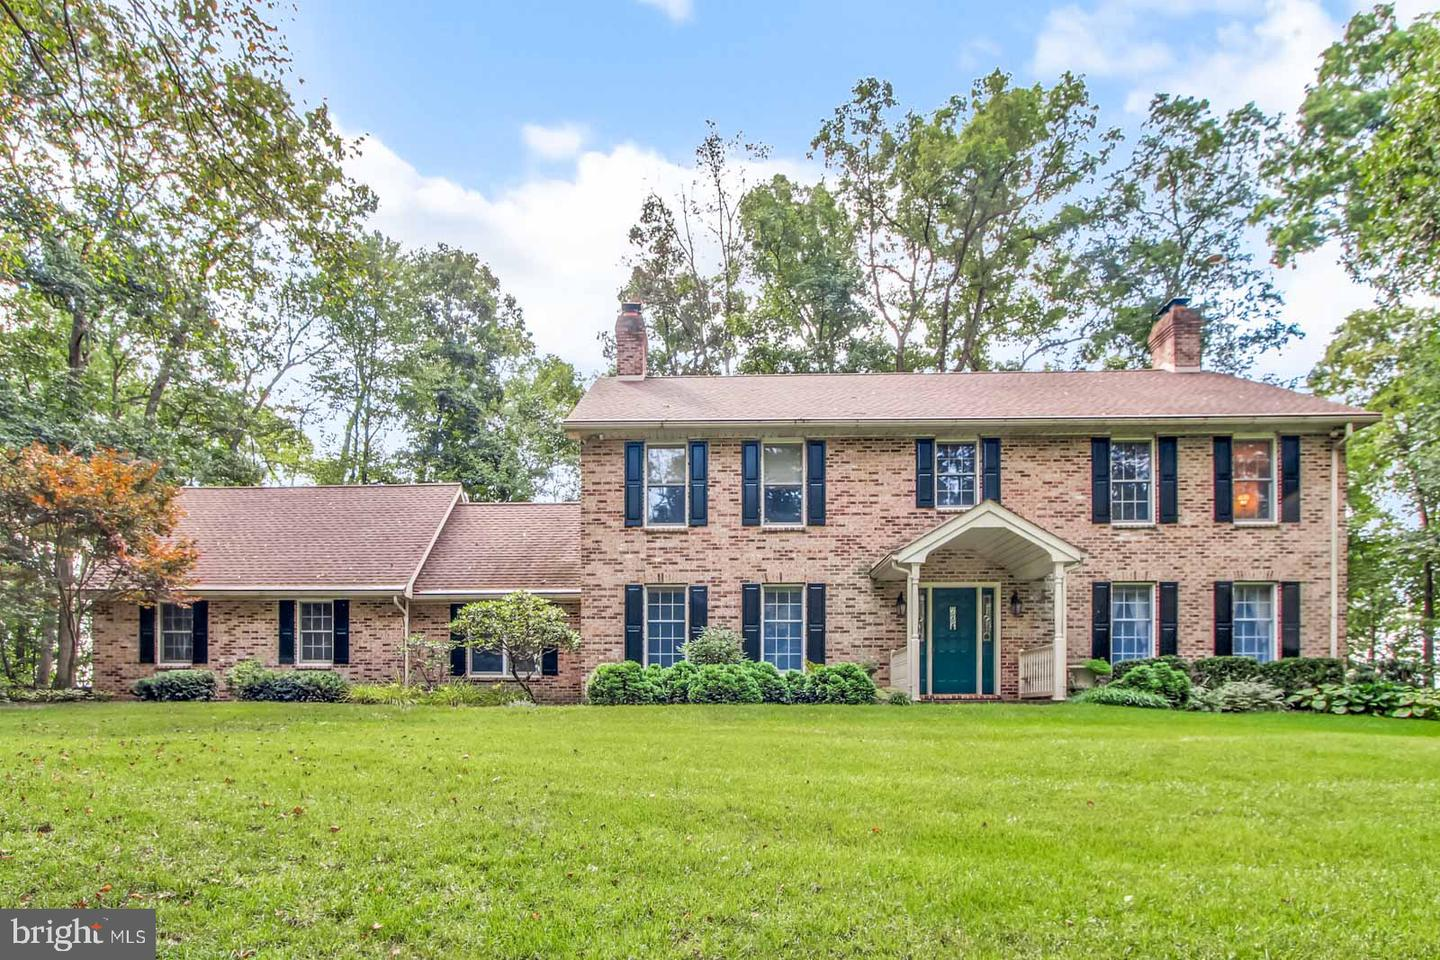 767 VALLEY DR, DALLASTOWN, PA 17313